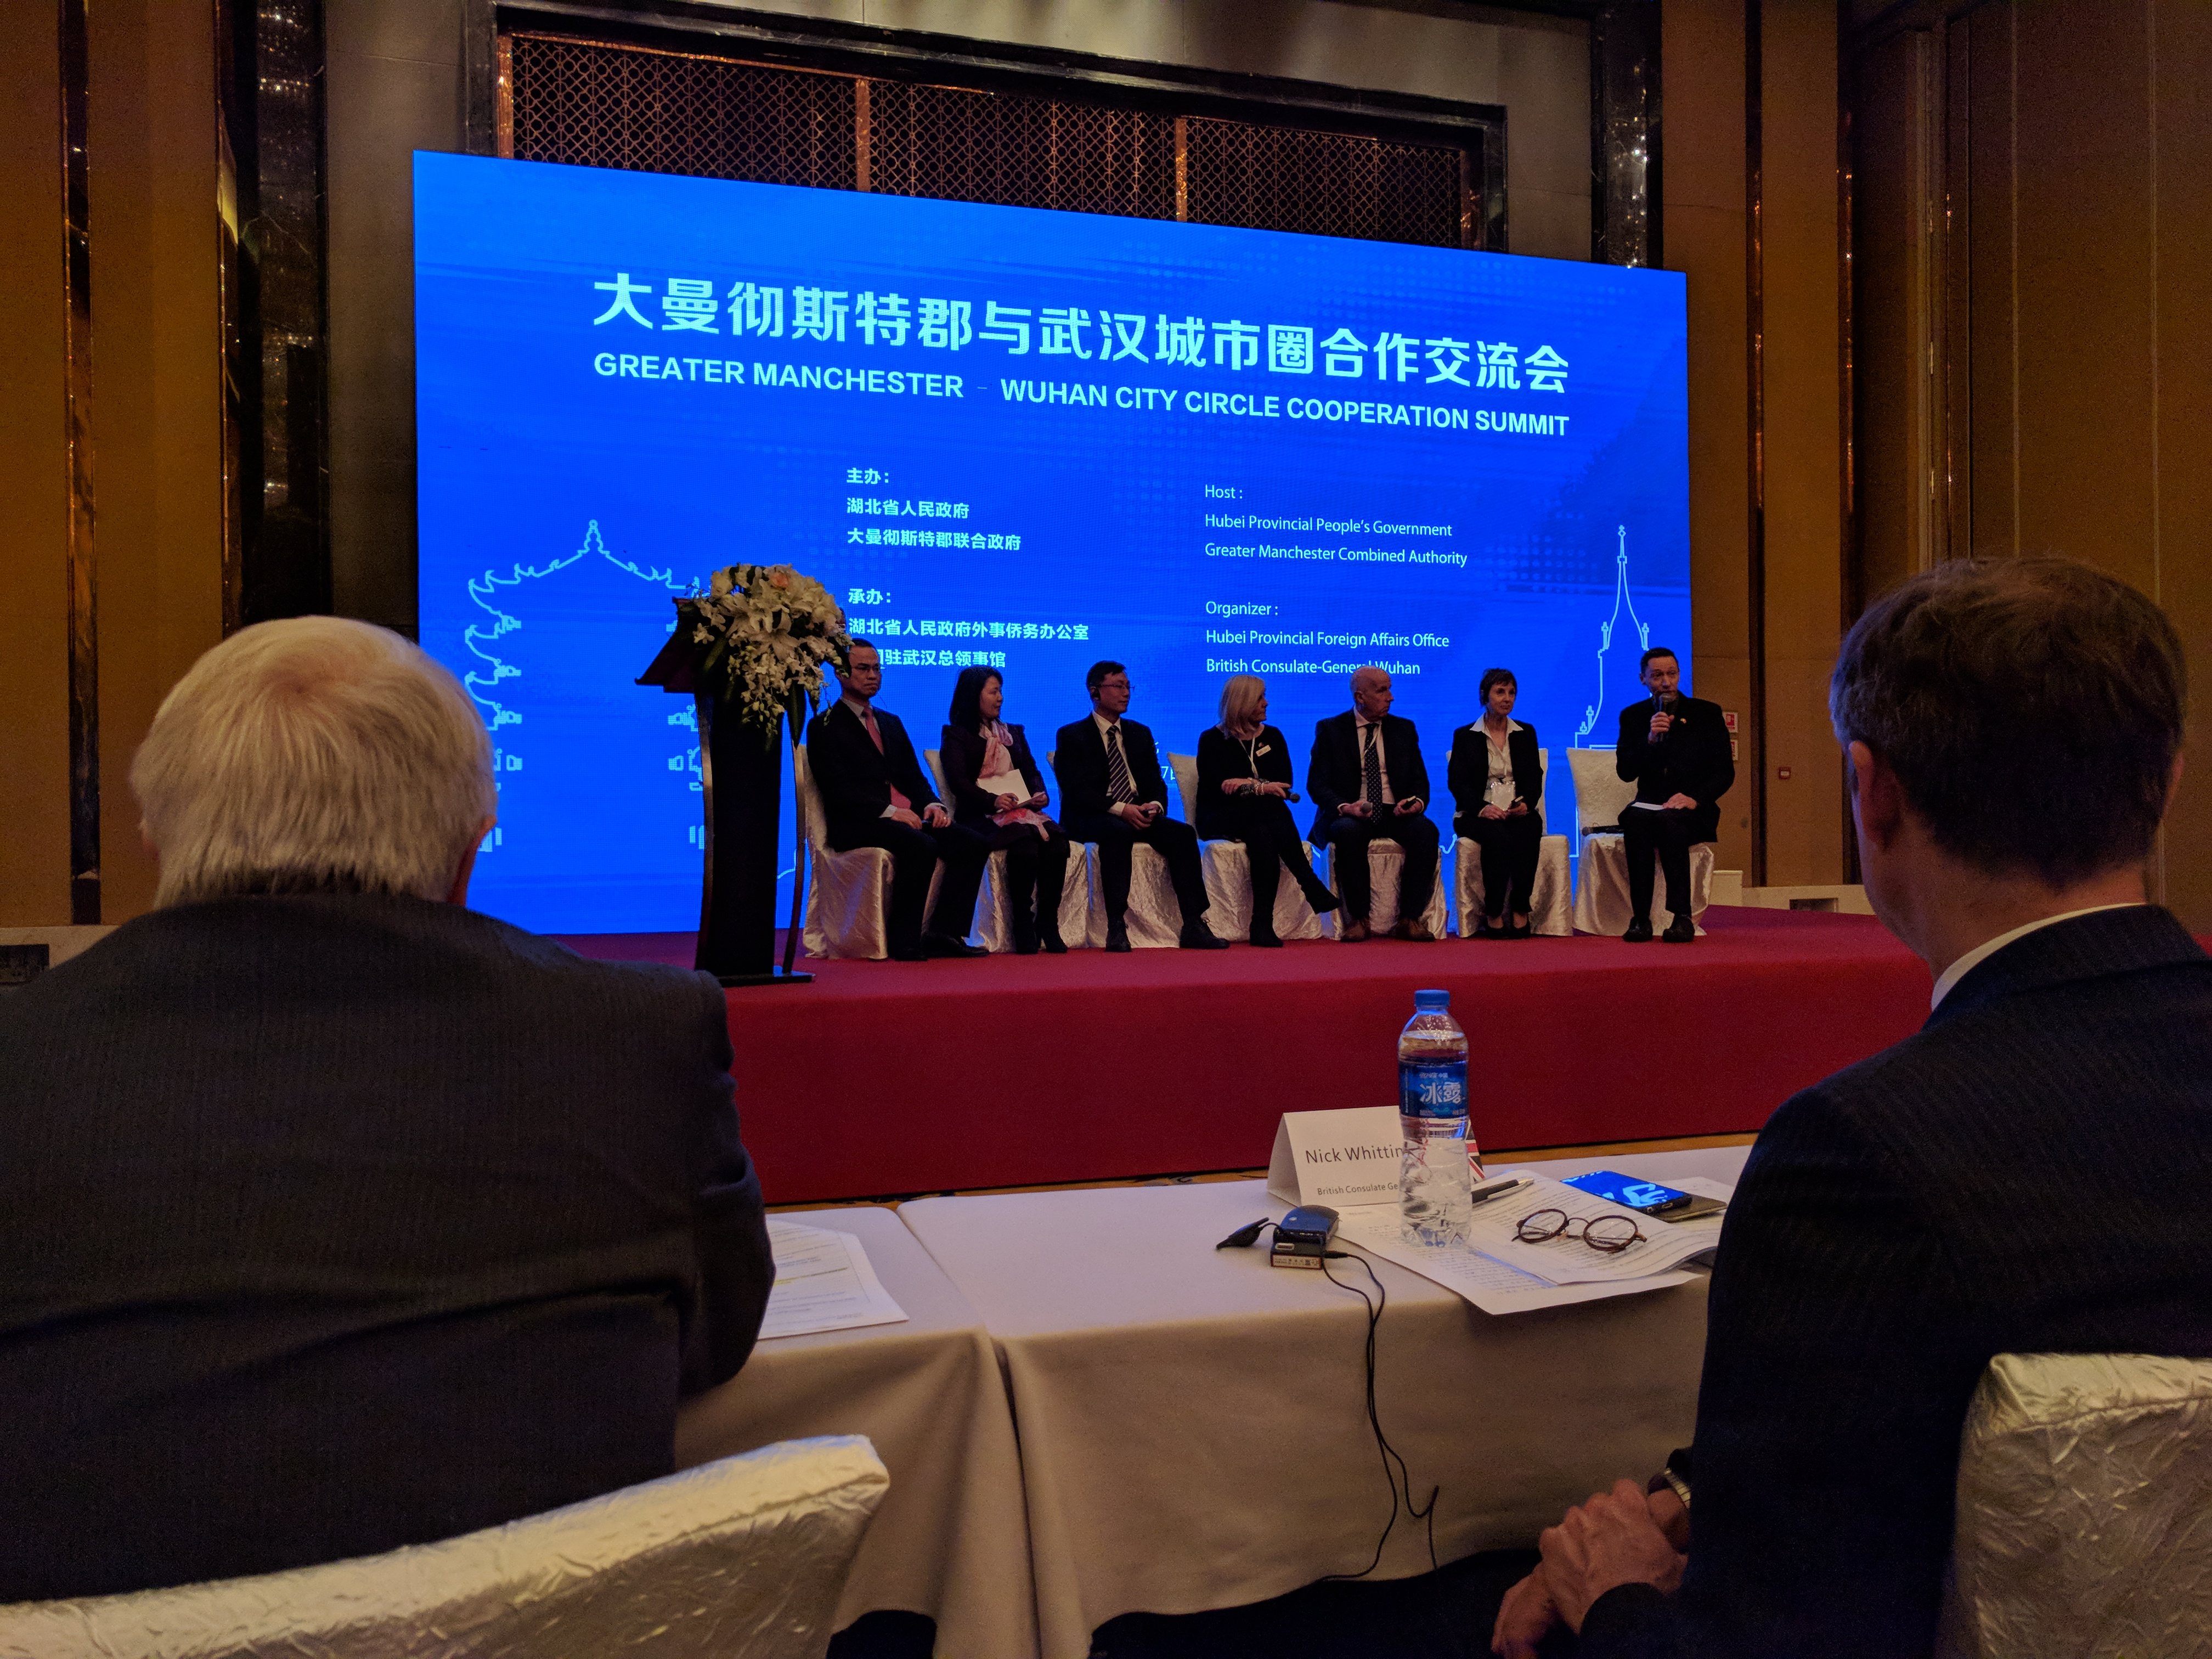 The ongoing Greater Manchester-Wuhan City Circle Cooperation Summit was held in Wuhan, Hubei province.